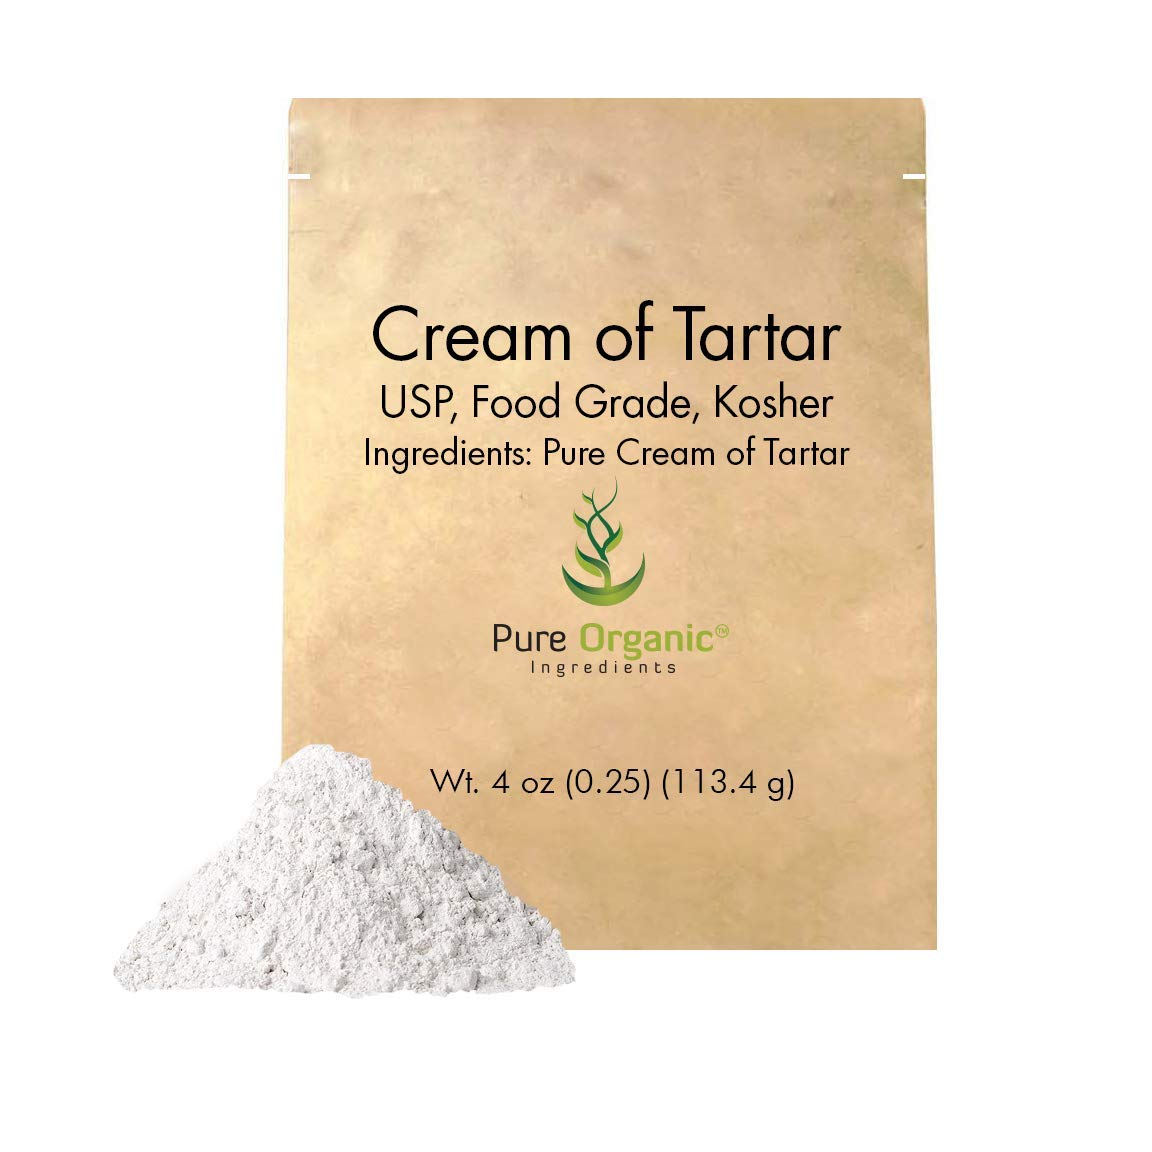 Cream of Tartar (4 oz.) by Pure Organic Ingredients, Highest Purity, Baking Additive, Non-GMO, Kosher, Gluten-Free, All-Natural, DIY Bath Bombs, Mess Free